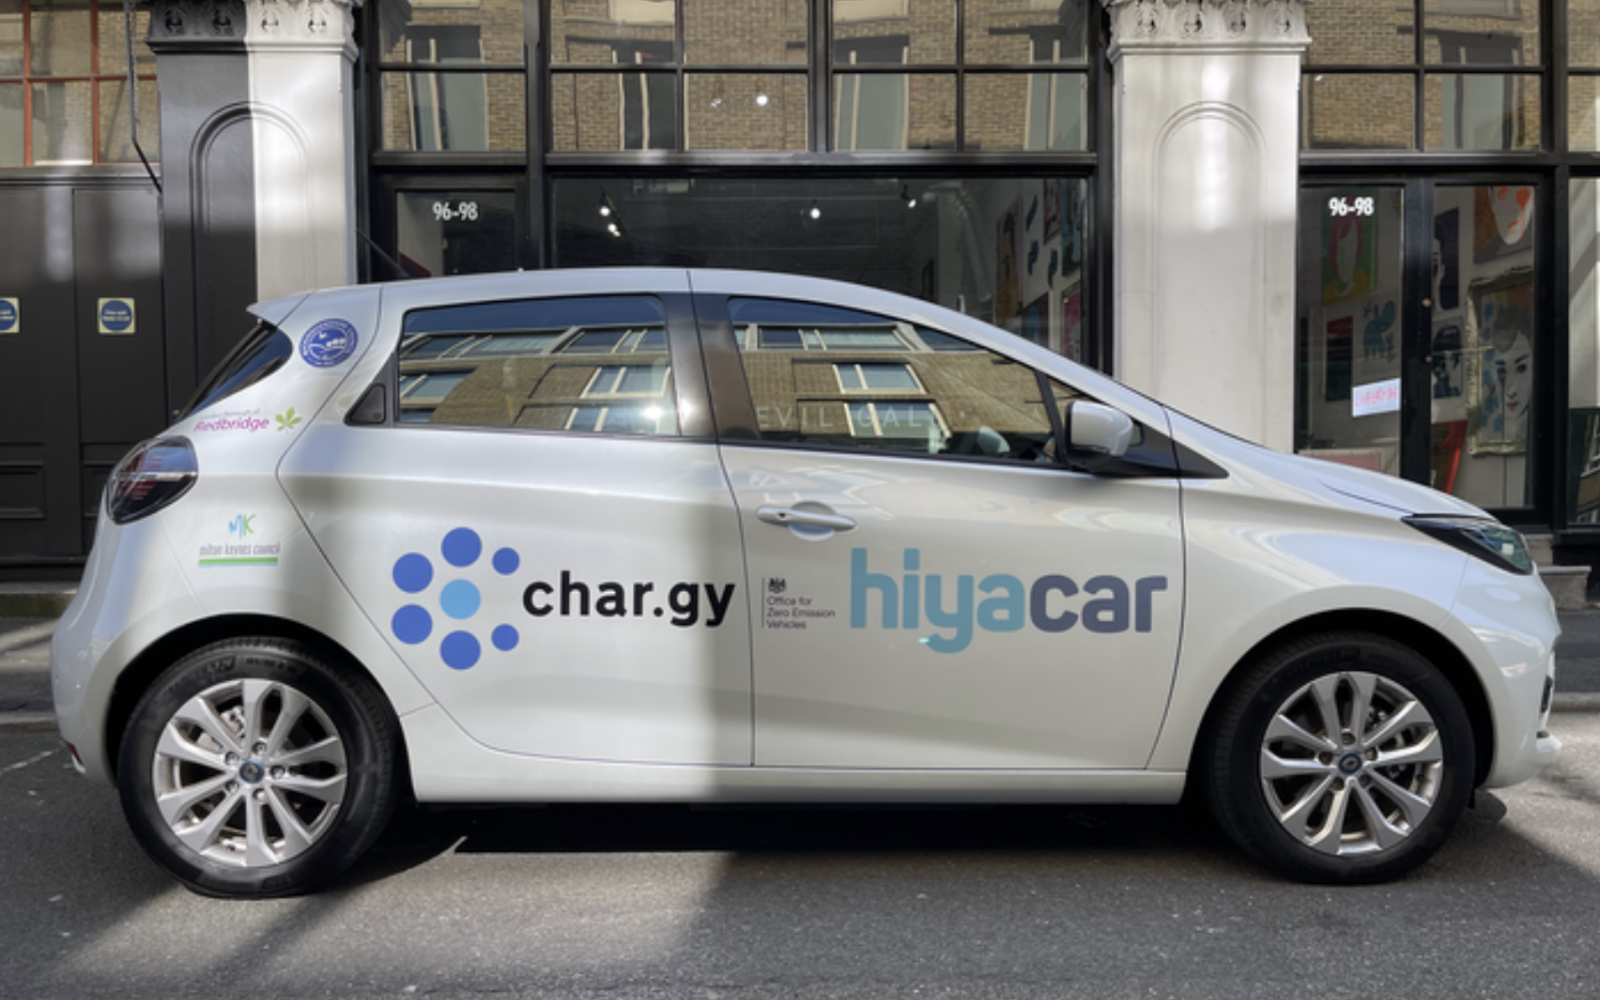 A total of ten wireless charging trials are to be run, with the first located in Marlow. Image: hiyacar.